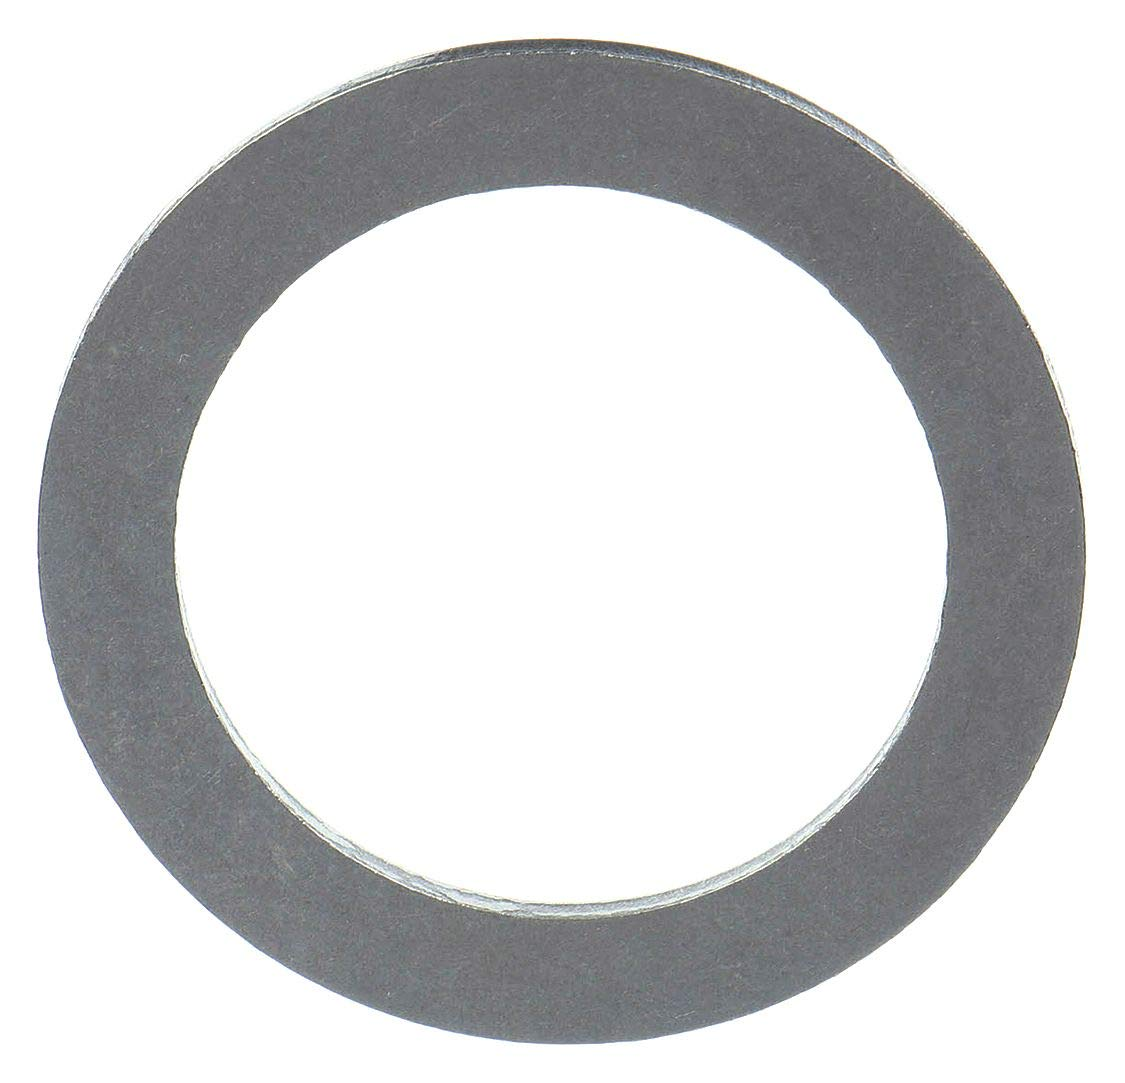 Steel Round Shim, Matte Finish, Full Hard Temper, 0.005'' Thickness, 1-3/8'' ID, 1-7/8'' OD (Pack of 10) by Small Parts